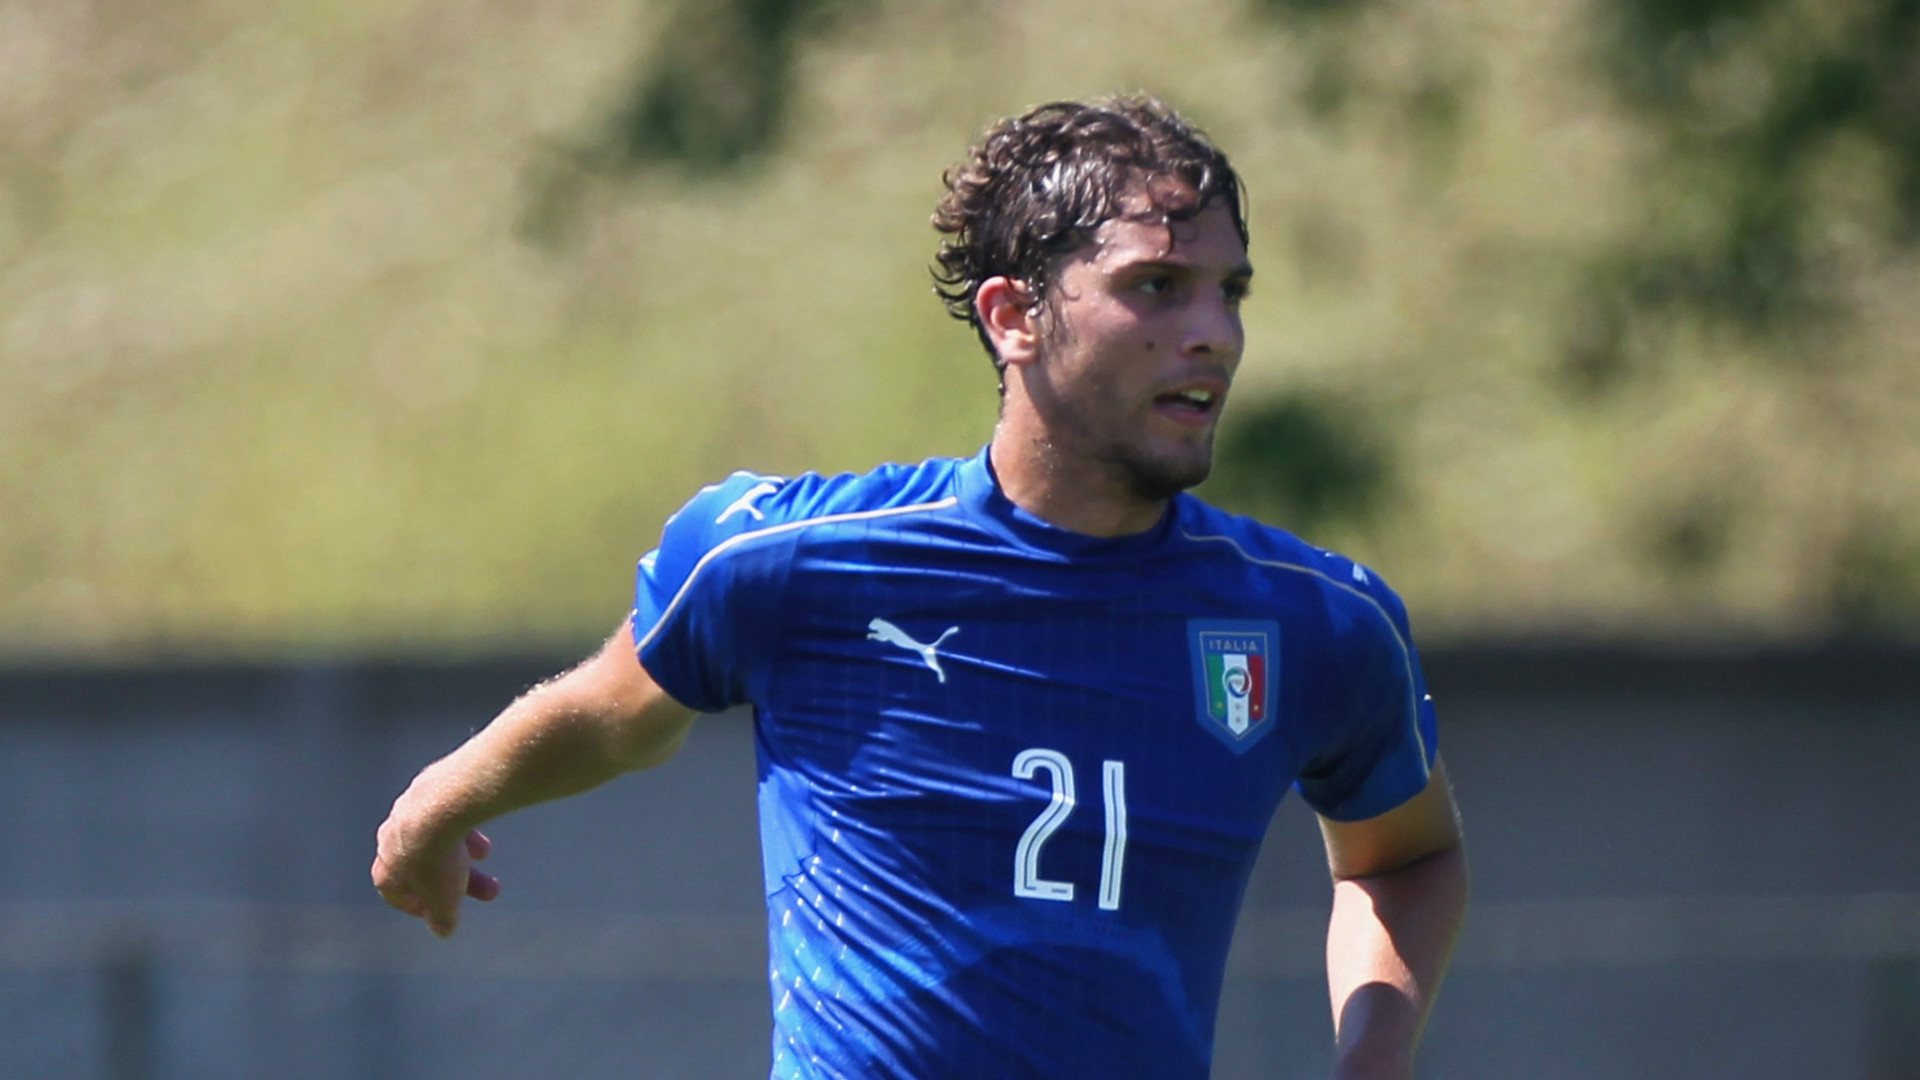 Europei U21: Locatelli, Spagna si batte